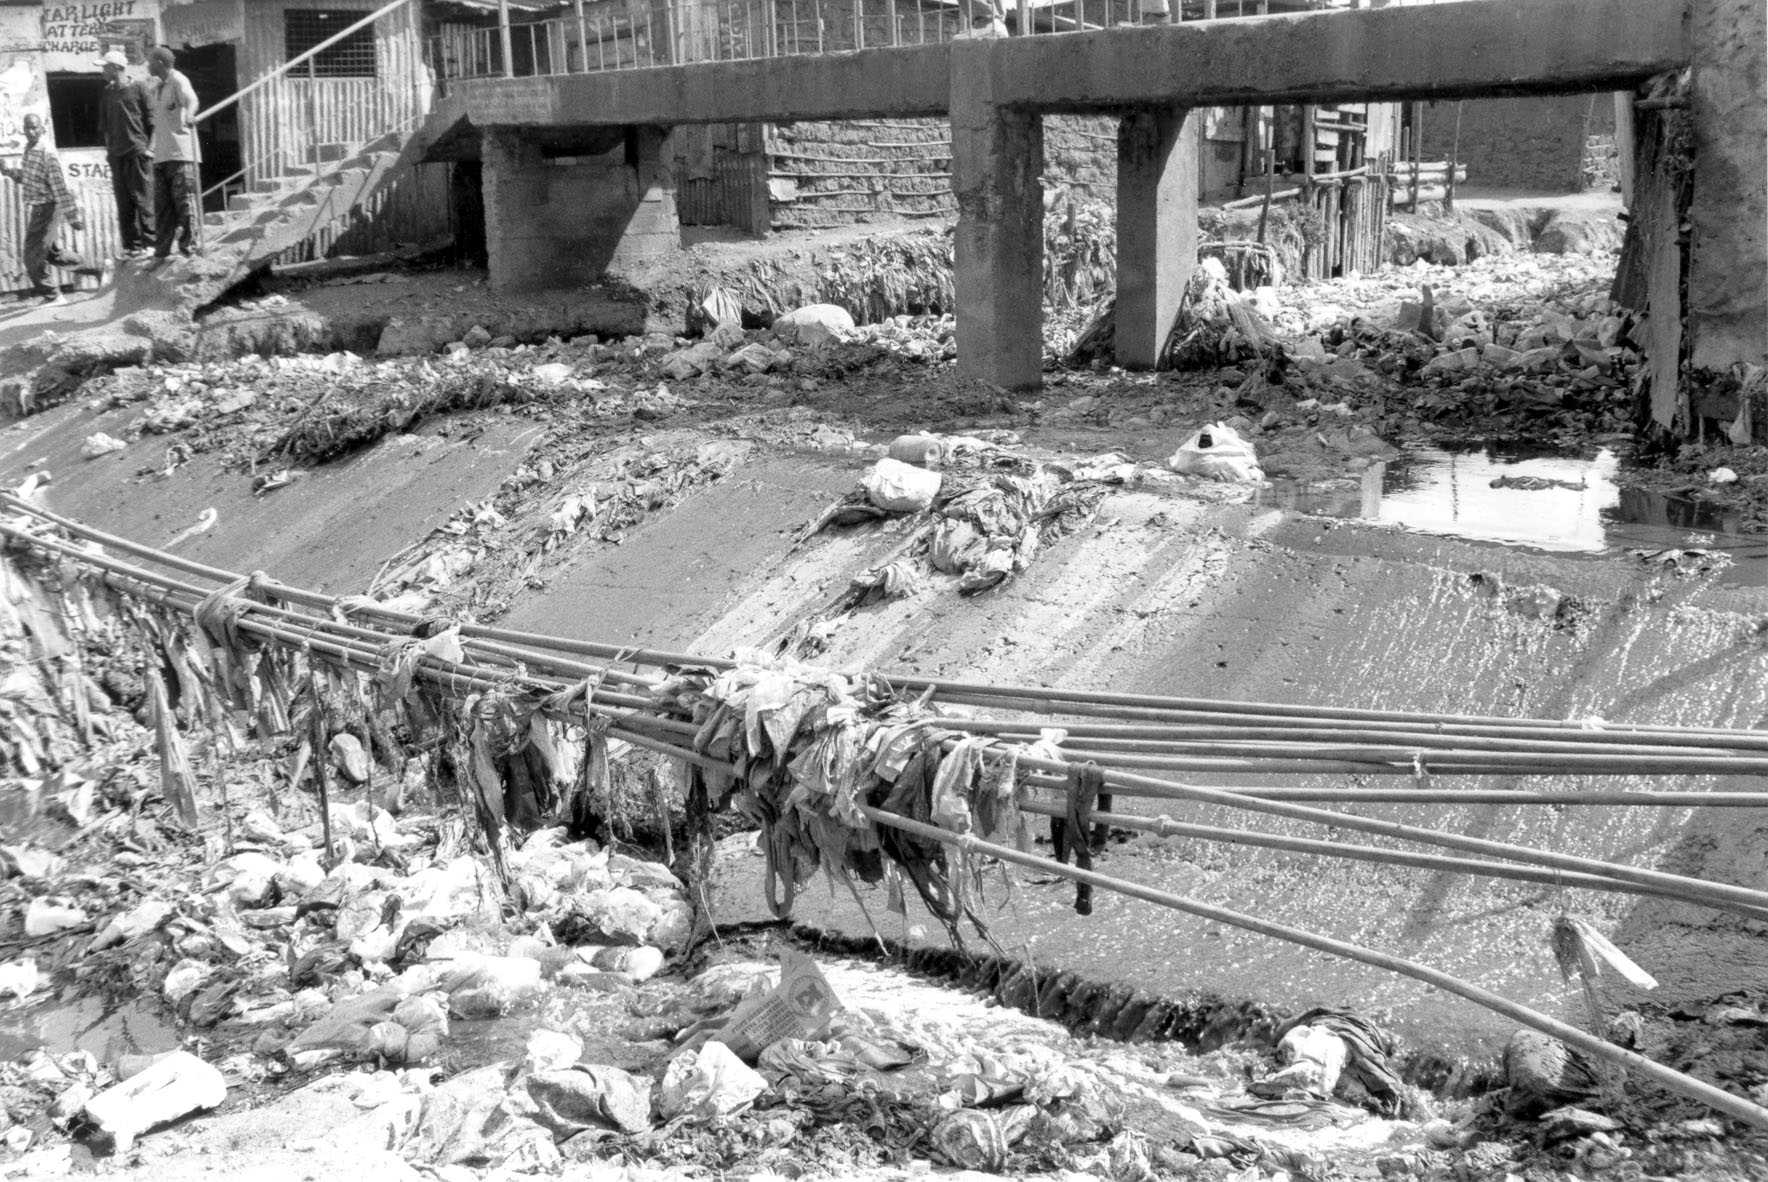 Kibera - Nairobi river bridge- junk B&W (June 2003)